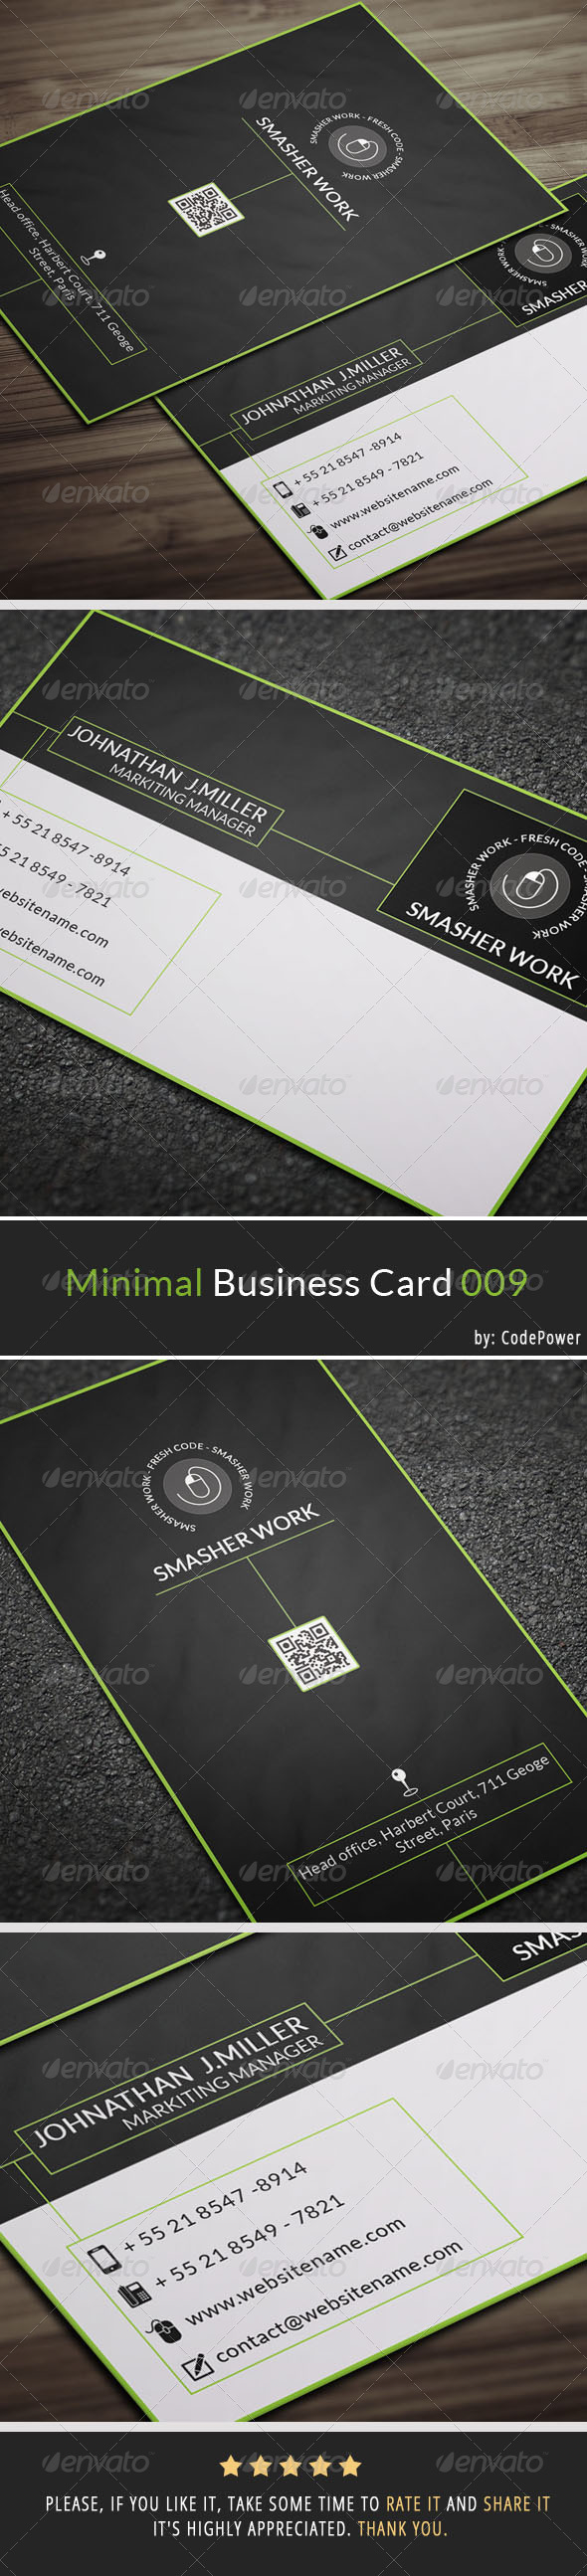 Minimal Business Card 009 - Corporate Business Cards